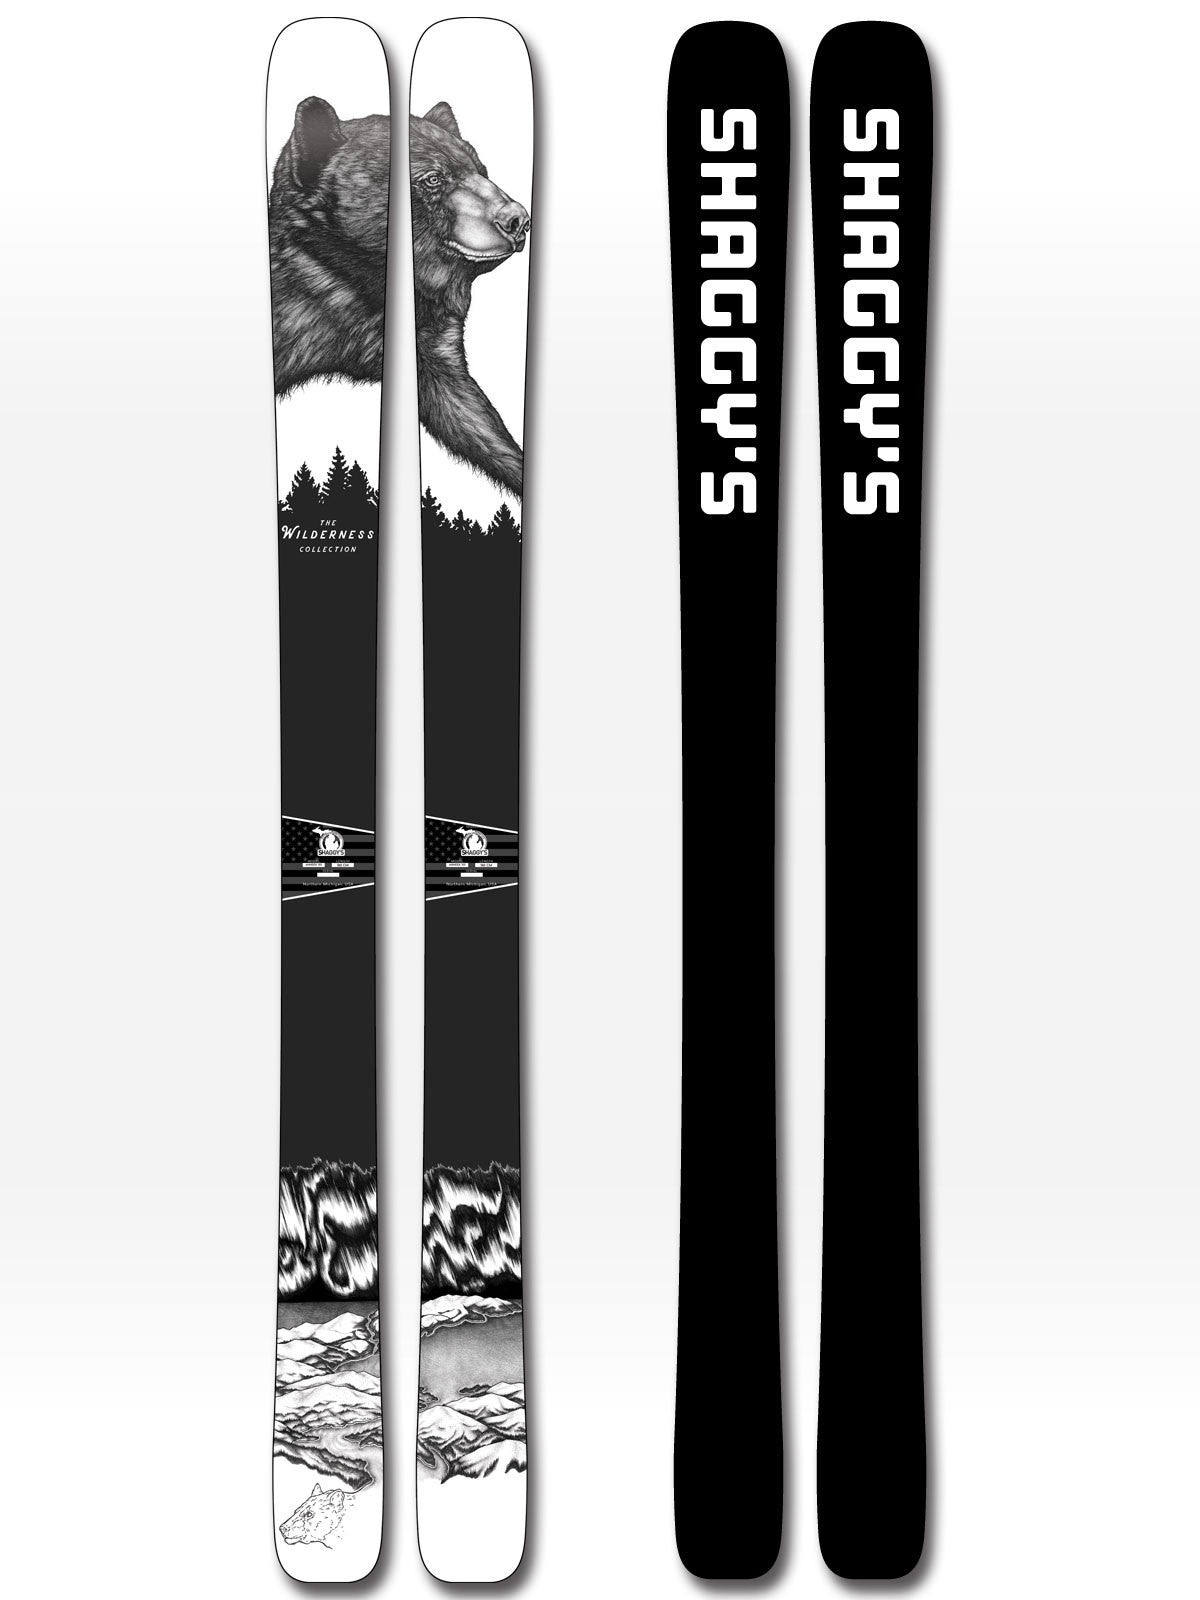 Limited Edition Wilderness Collection Skis